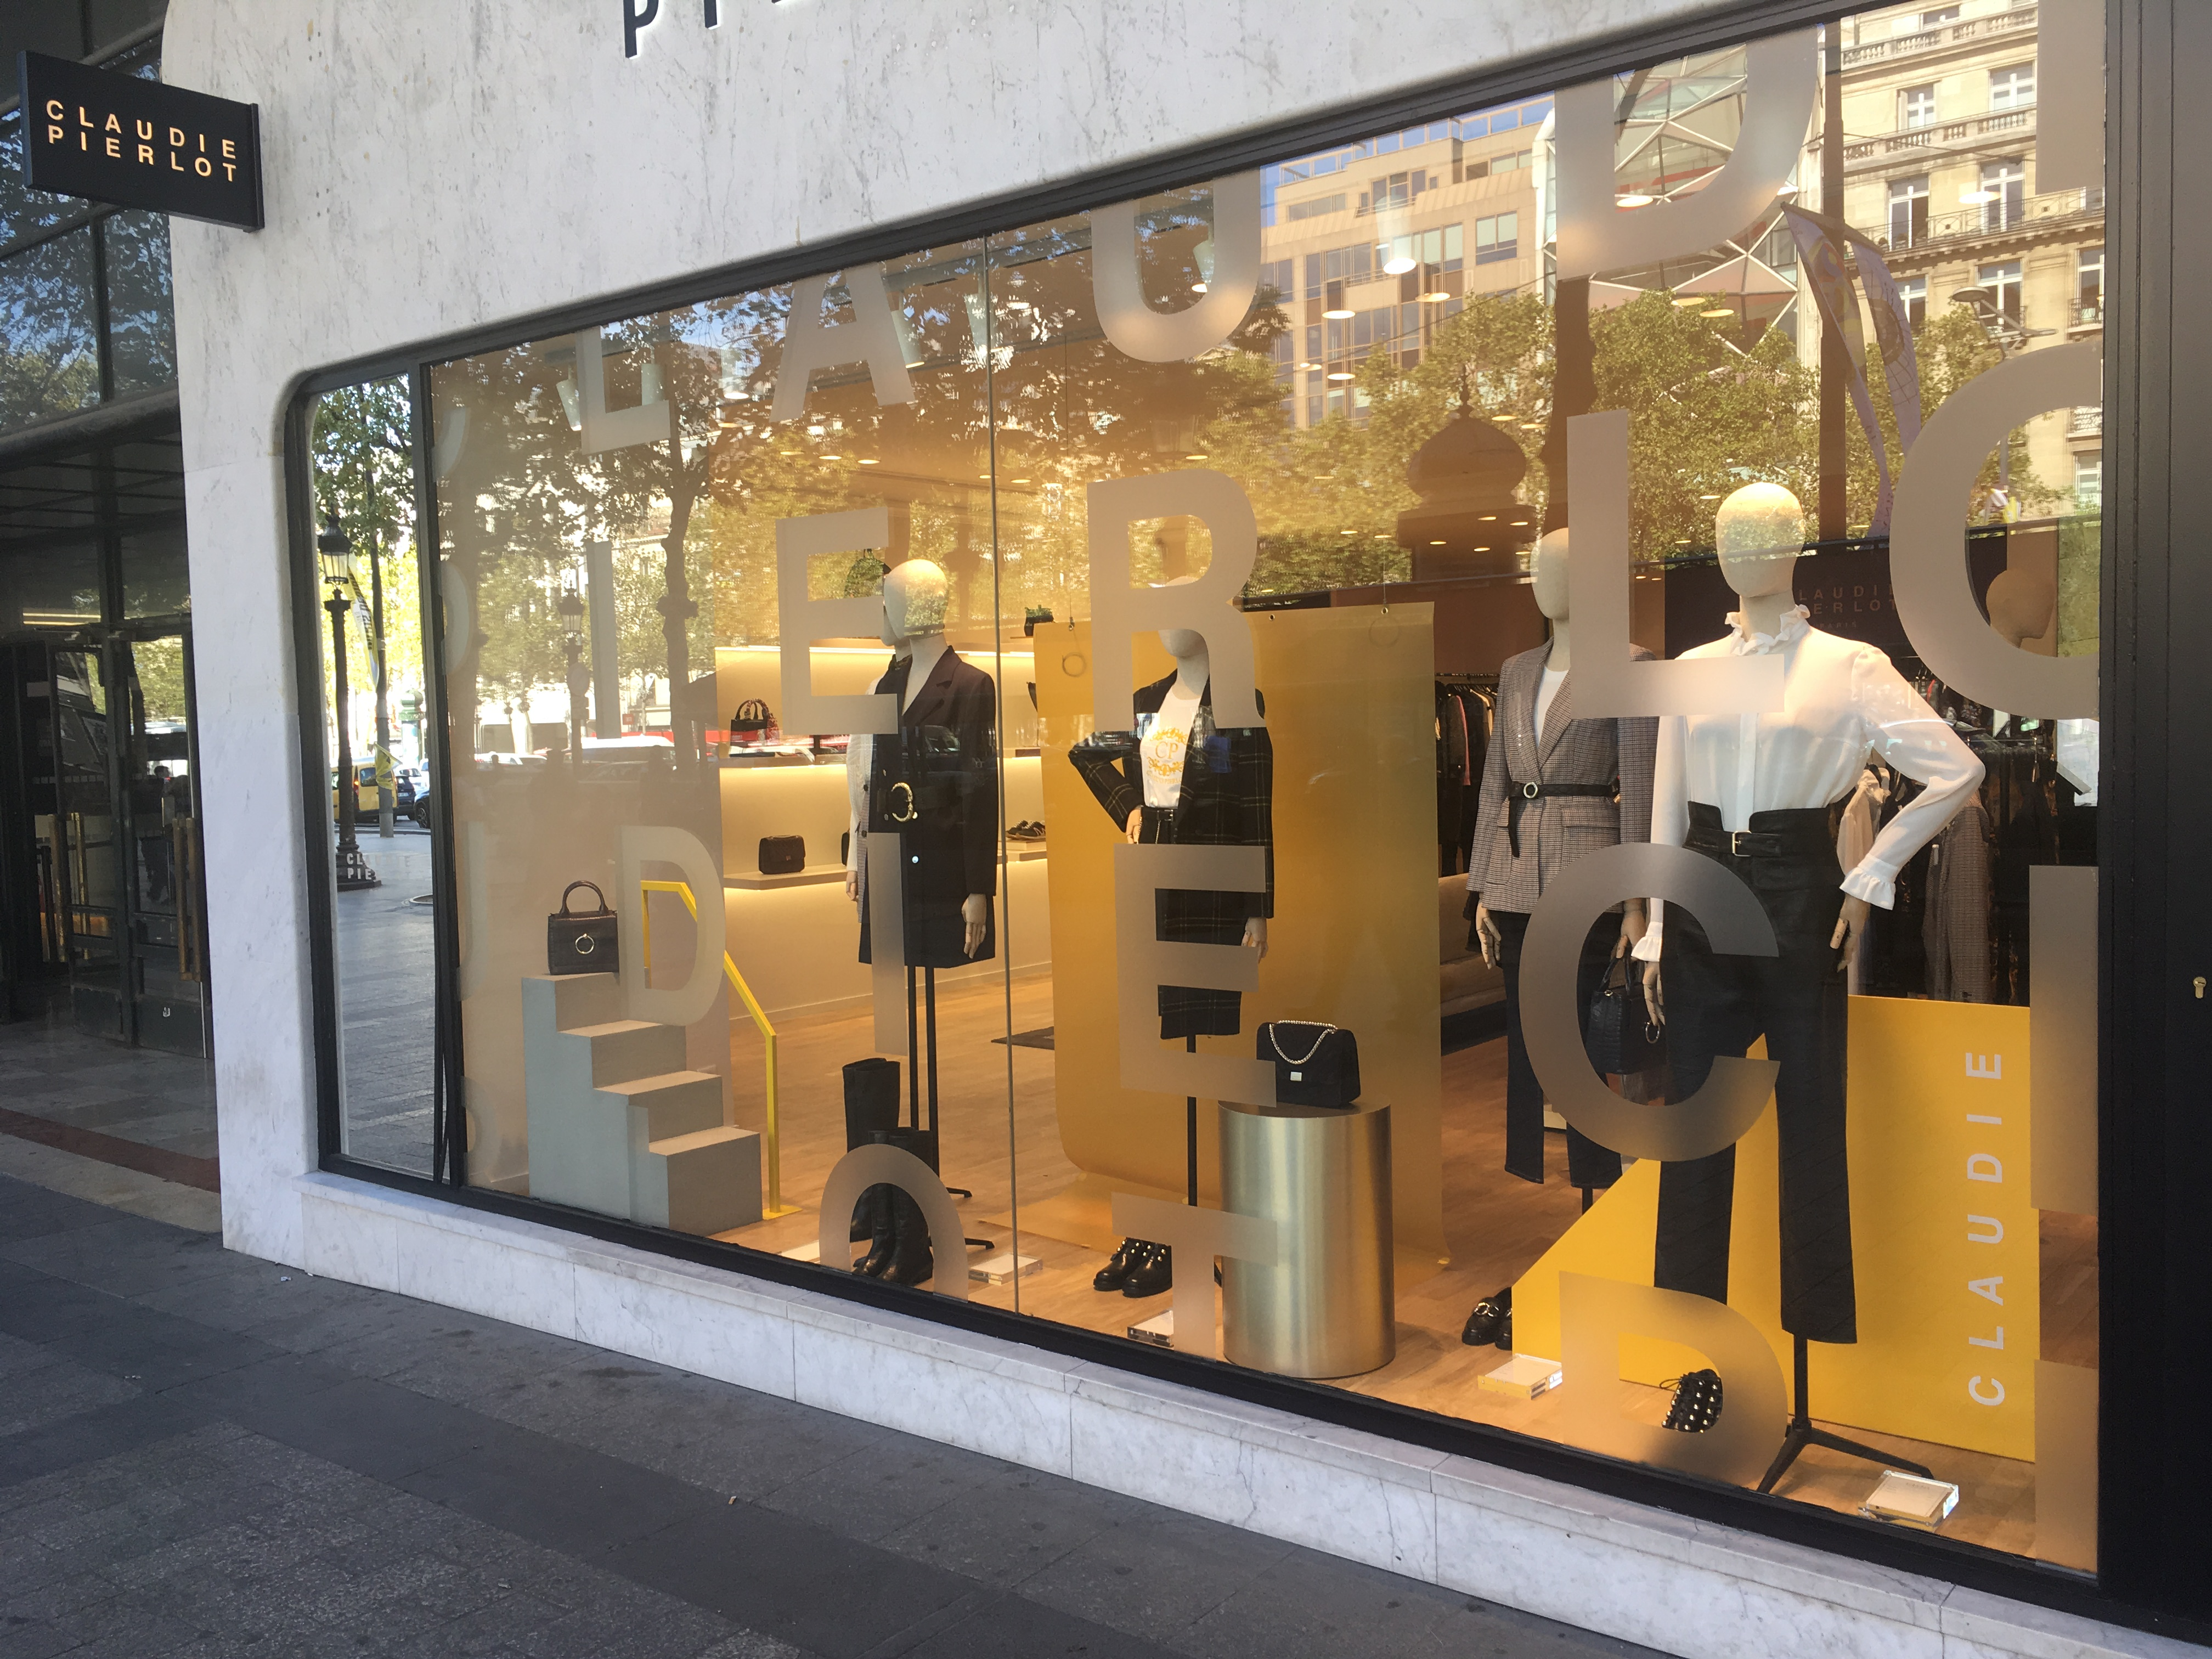 AGENCE_RETAIL_DESIGN_VISUAL_MERCHANDISING_SAINKO_CLAUDIEPIERLOT_AH_1